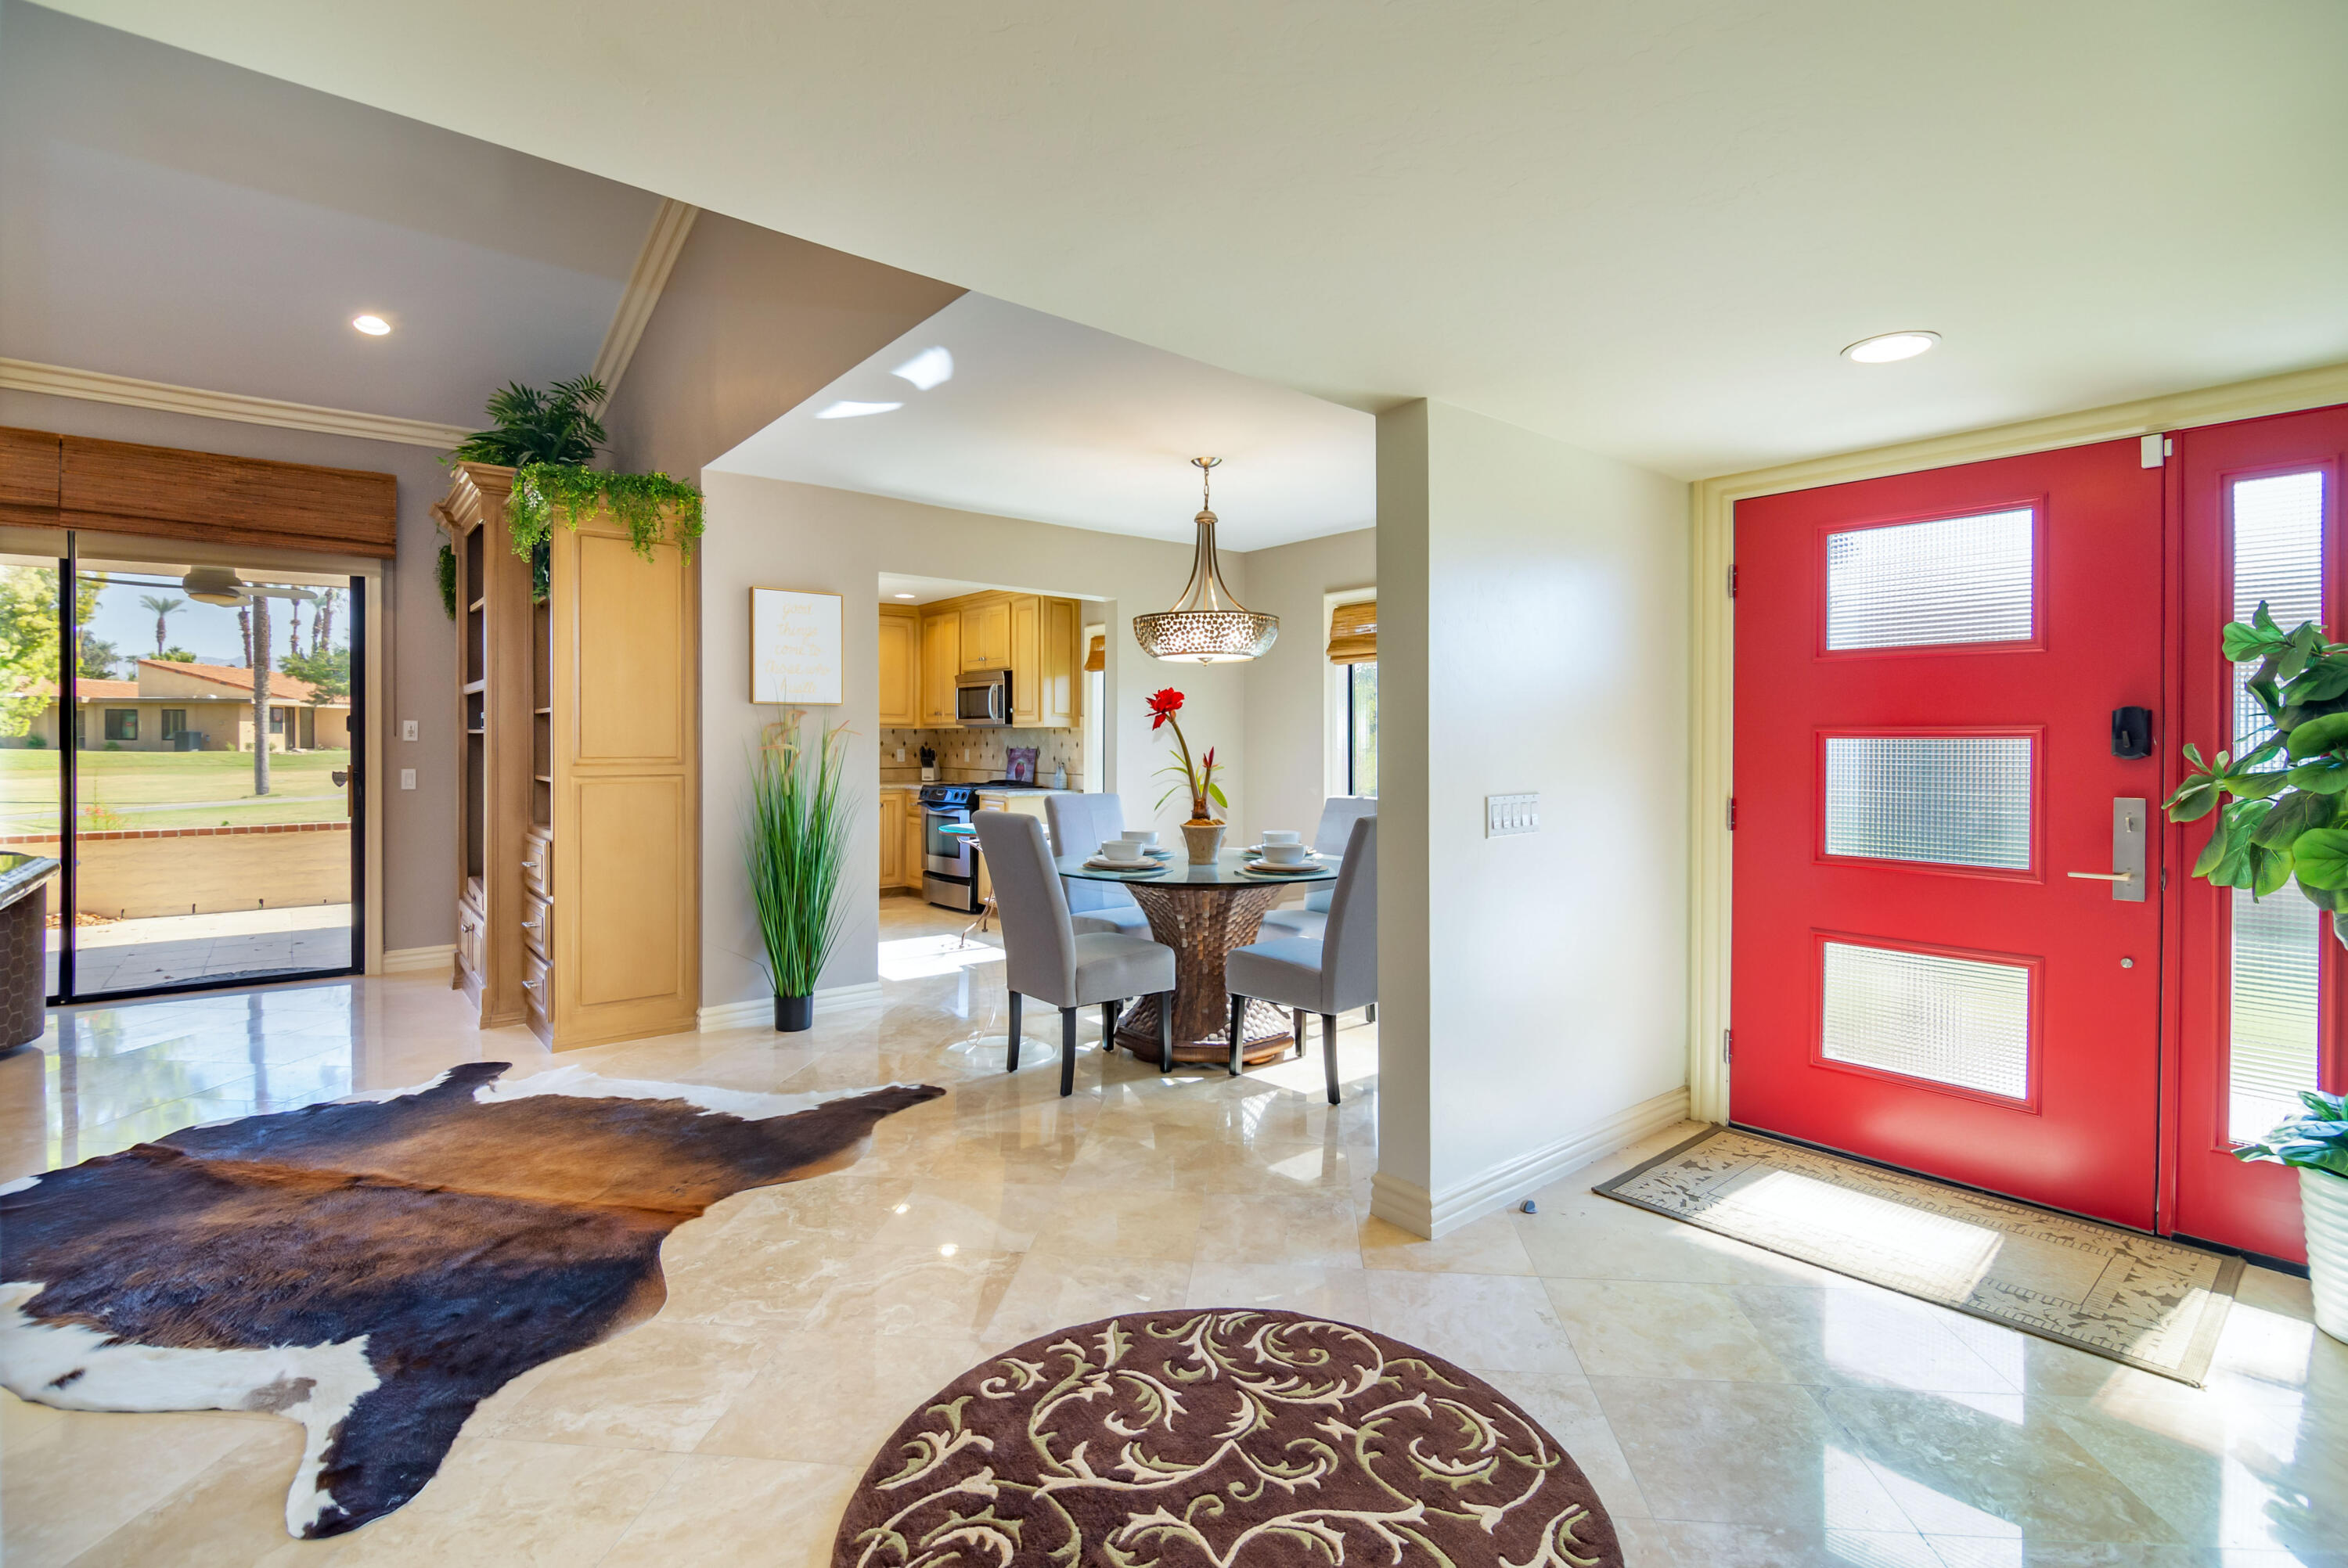 This highly sought-after Barcelona Plan is very well situated inside Sunrise Country Club. This is a rare investment opportunity as this impressively upgraded condominium is being sold turnkey furnished complete with 2022 seasonal bookings. Rental history as well as future leases are available upon request. The minute you walk into this home you'll see the attention to detail in every aspect. Recently remodeled with polished travertine tile, custom cabinets, granite counter tops, and a chef's kitchen with all stainless-steel appliances. Elegant crown molding carries from one room to the next. The atrium was removed to incorporate a stunning bar with granite counters and a Sub-Zero wine fridge. The addition of a clerestory window sitting alongside of vaulted ceilings adds warmth and character that sets this home apart from any other in Sunrise C.C. Enjoy tennis on 13 championship courts, 4 pickle-ball courts, or golf on a par 64 Executive course. This home is the epitome of Desert living that you have been looking for.